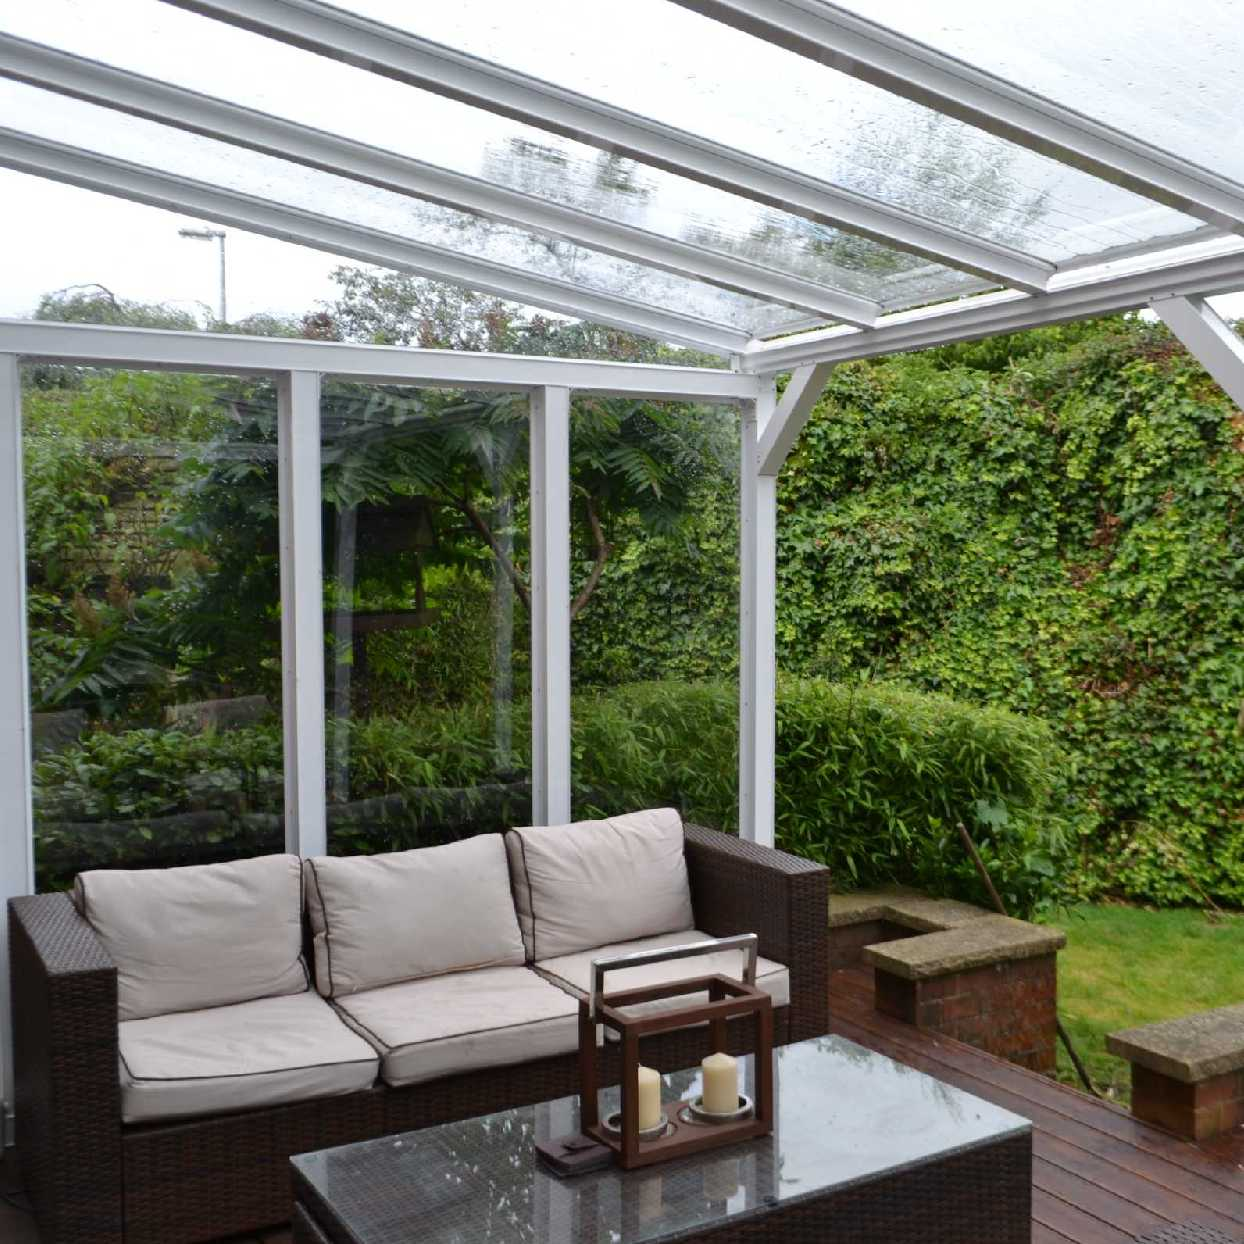 Great selection of Omega Smart Lean-To Canopy with 16mm Polycarbonate Glazing - 10.6m (W) x 3.5m (P), (5) Supporting Posts